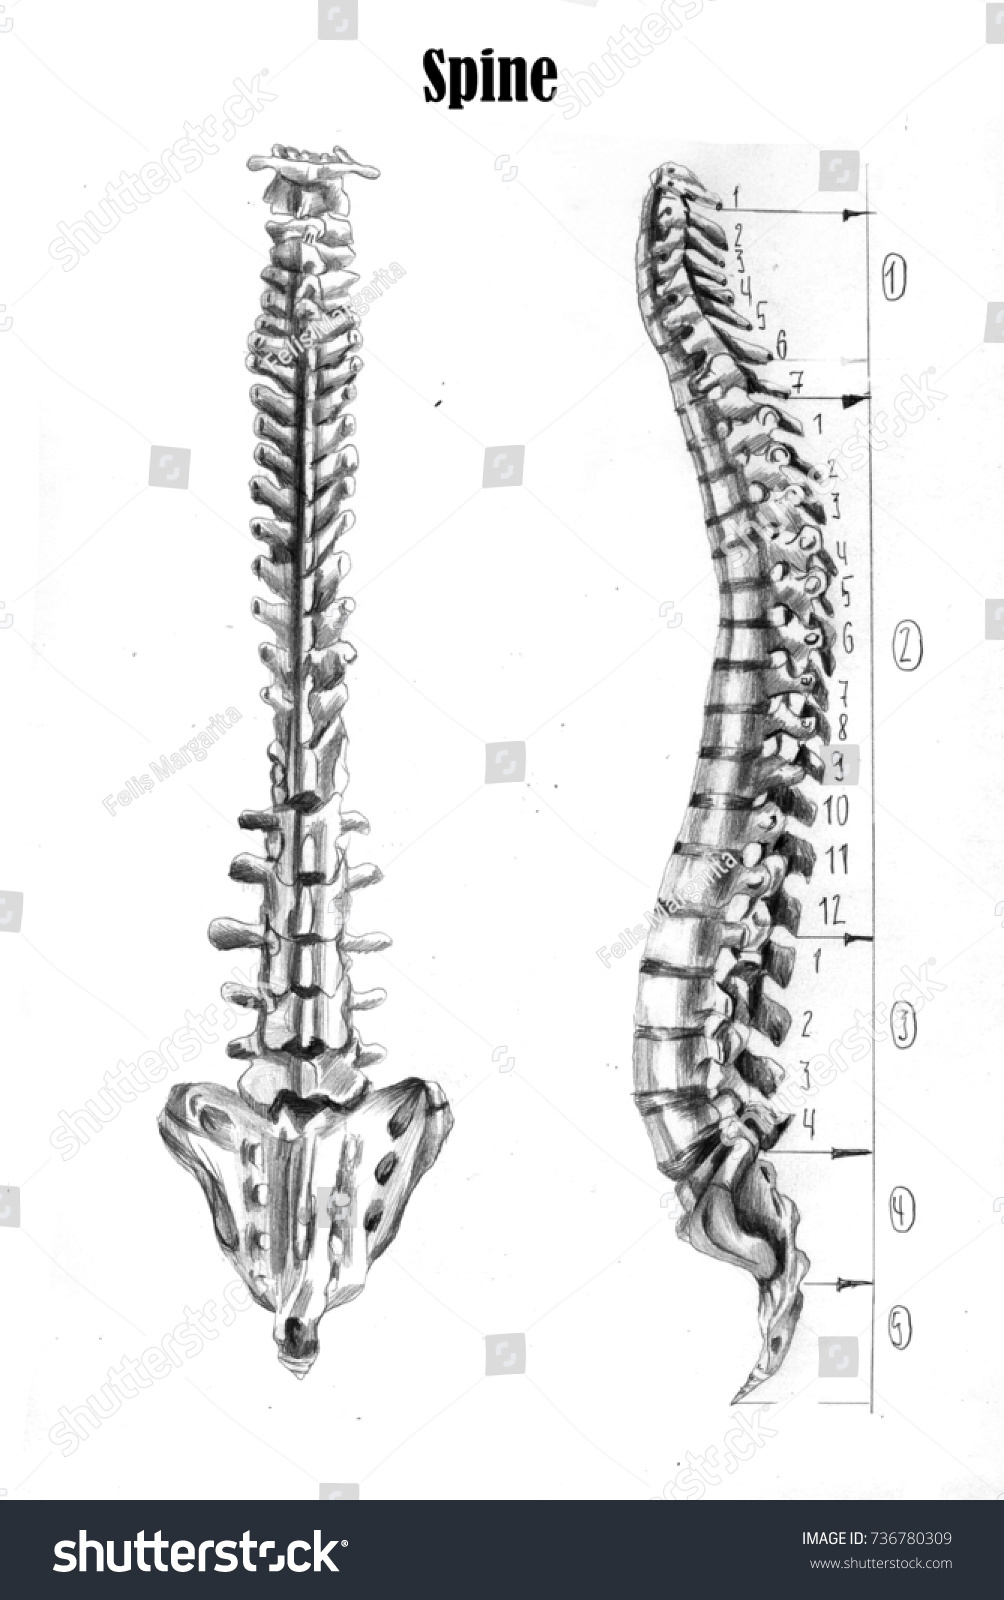 Human Spine Anatomy Medical Students Stock Illustration 736780309 ...